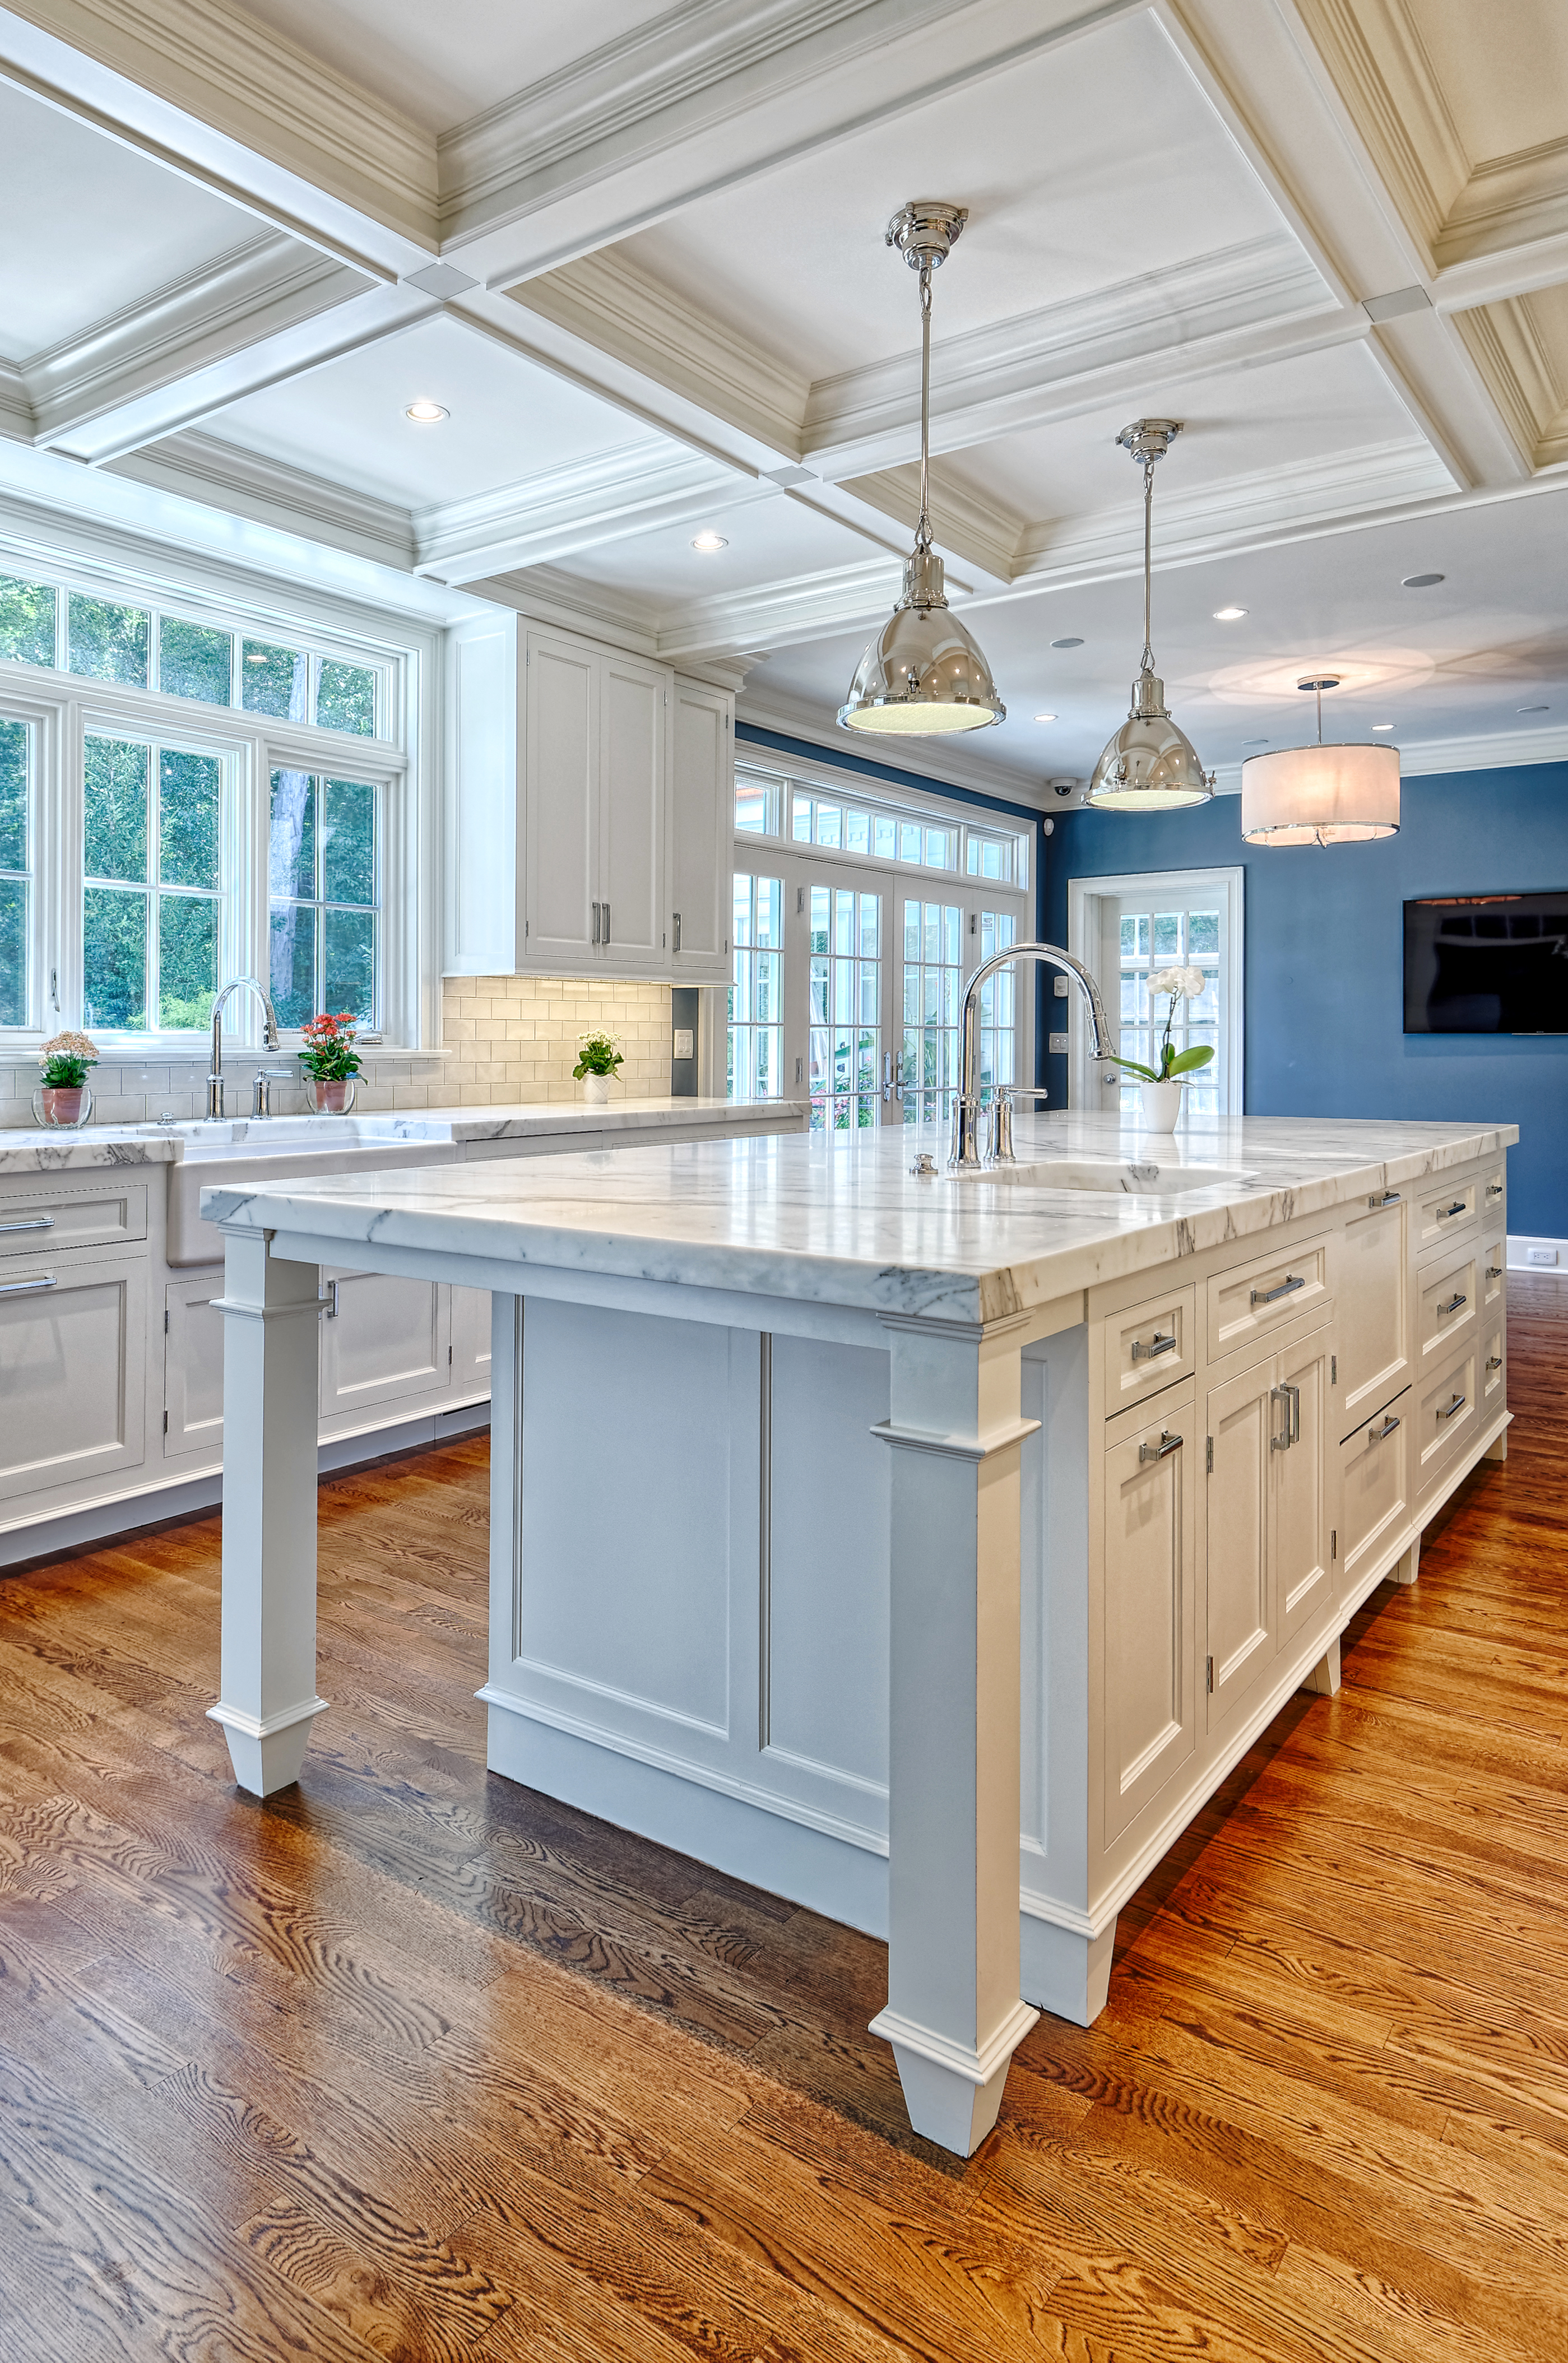 Fairfield Kitchen Renovation by Domus Constructors, LLC